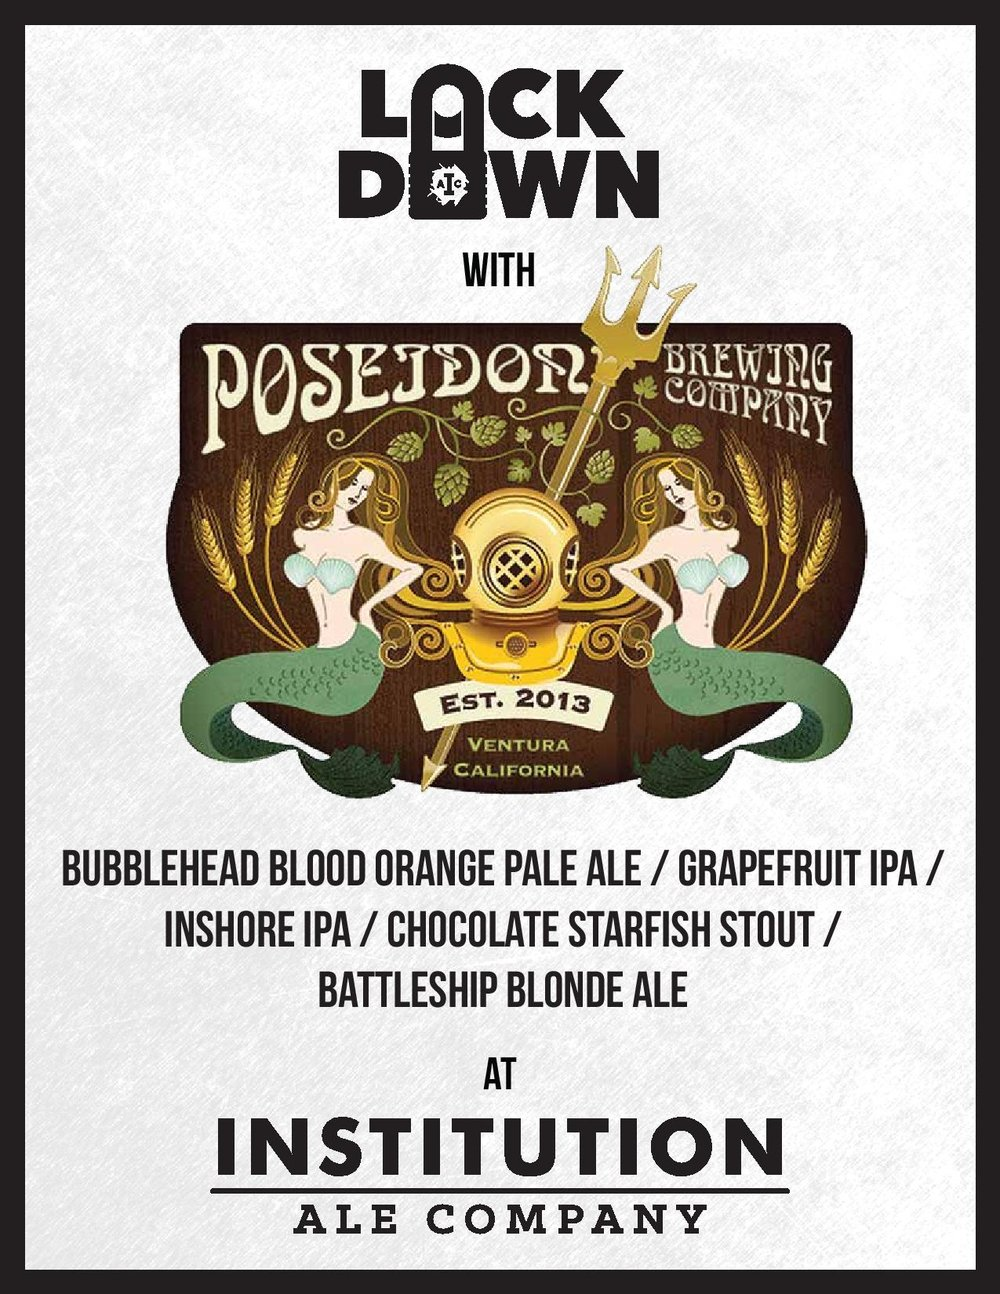 poseidon_lockdown_flyer (1)-page-001.jpg